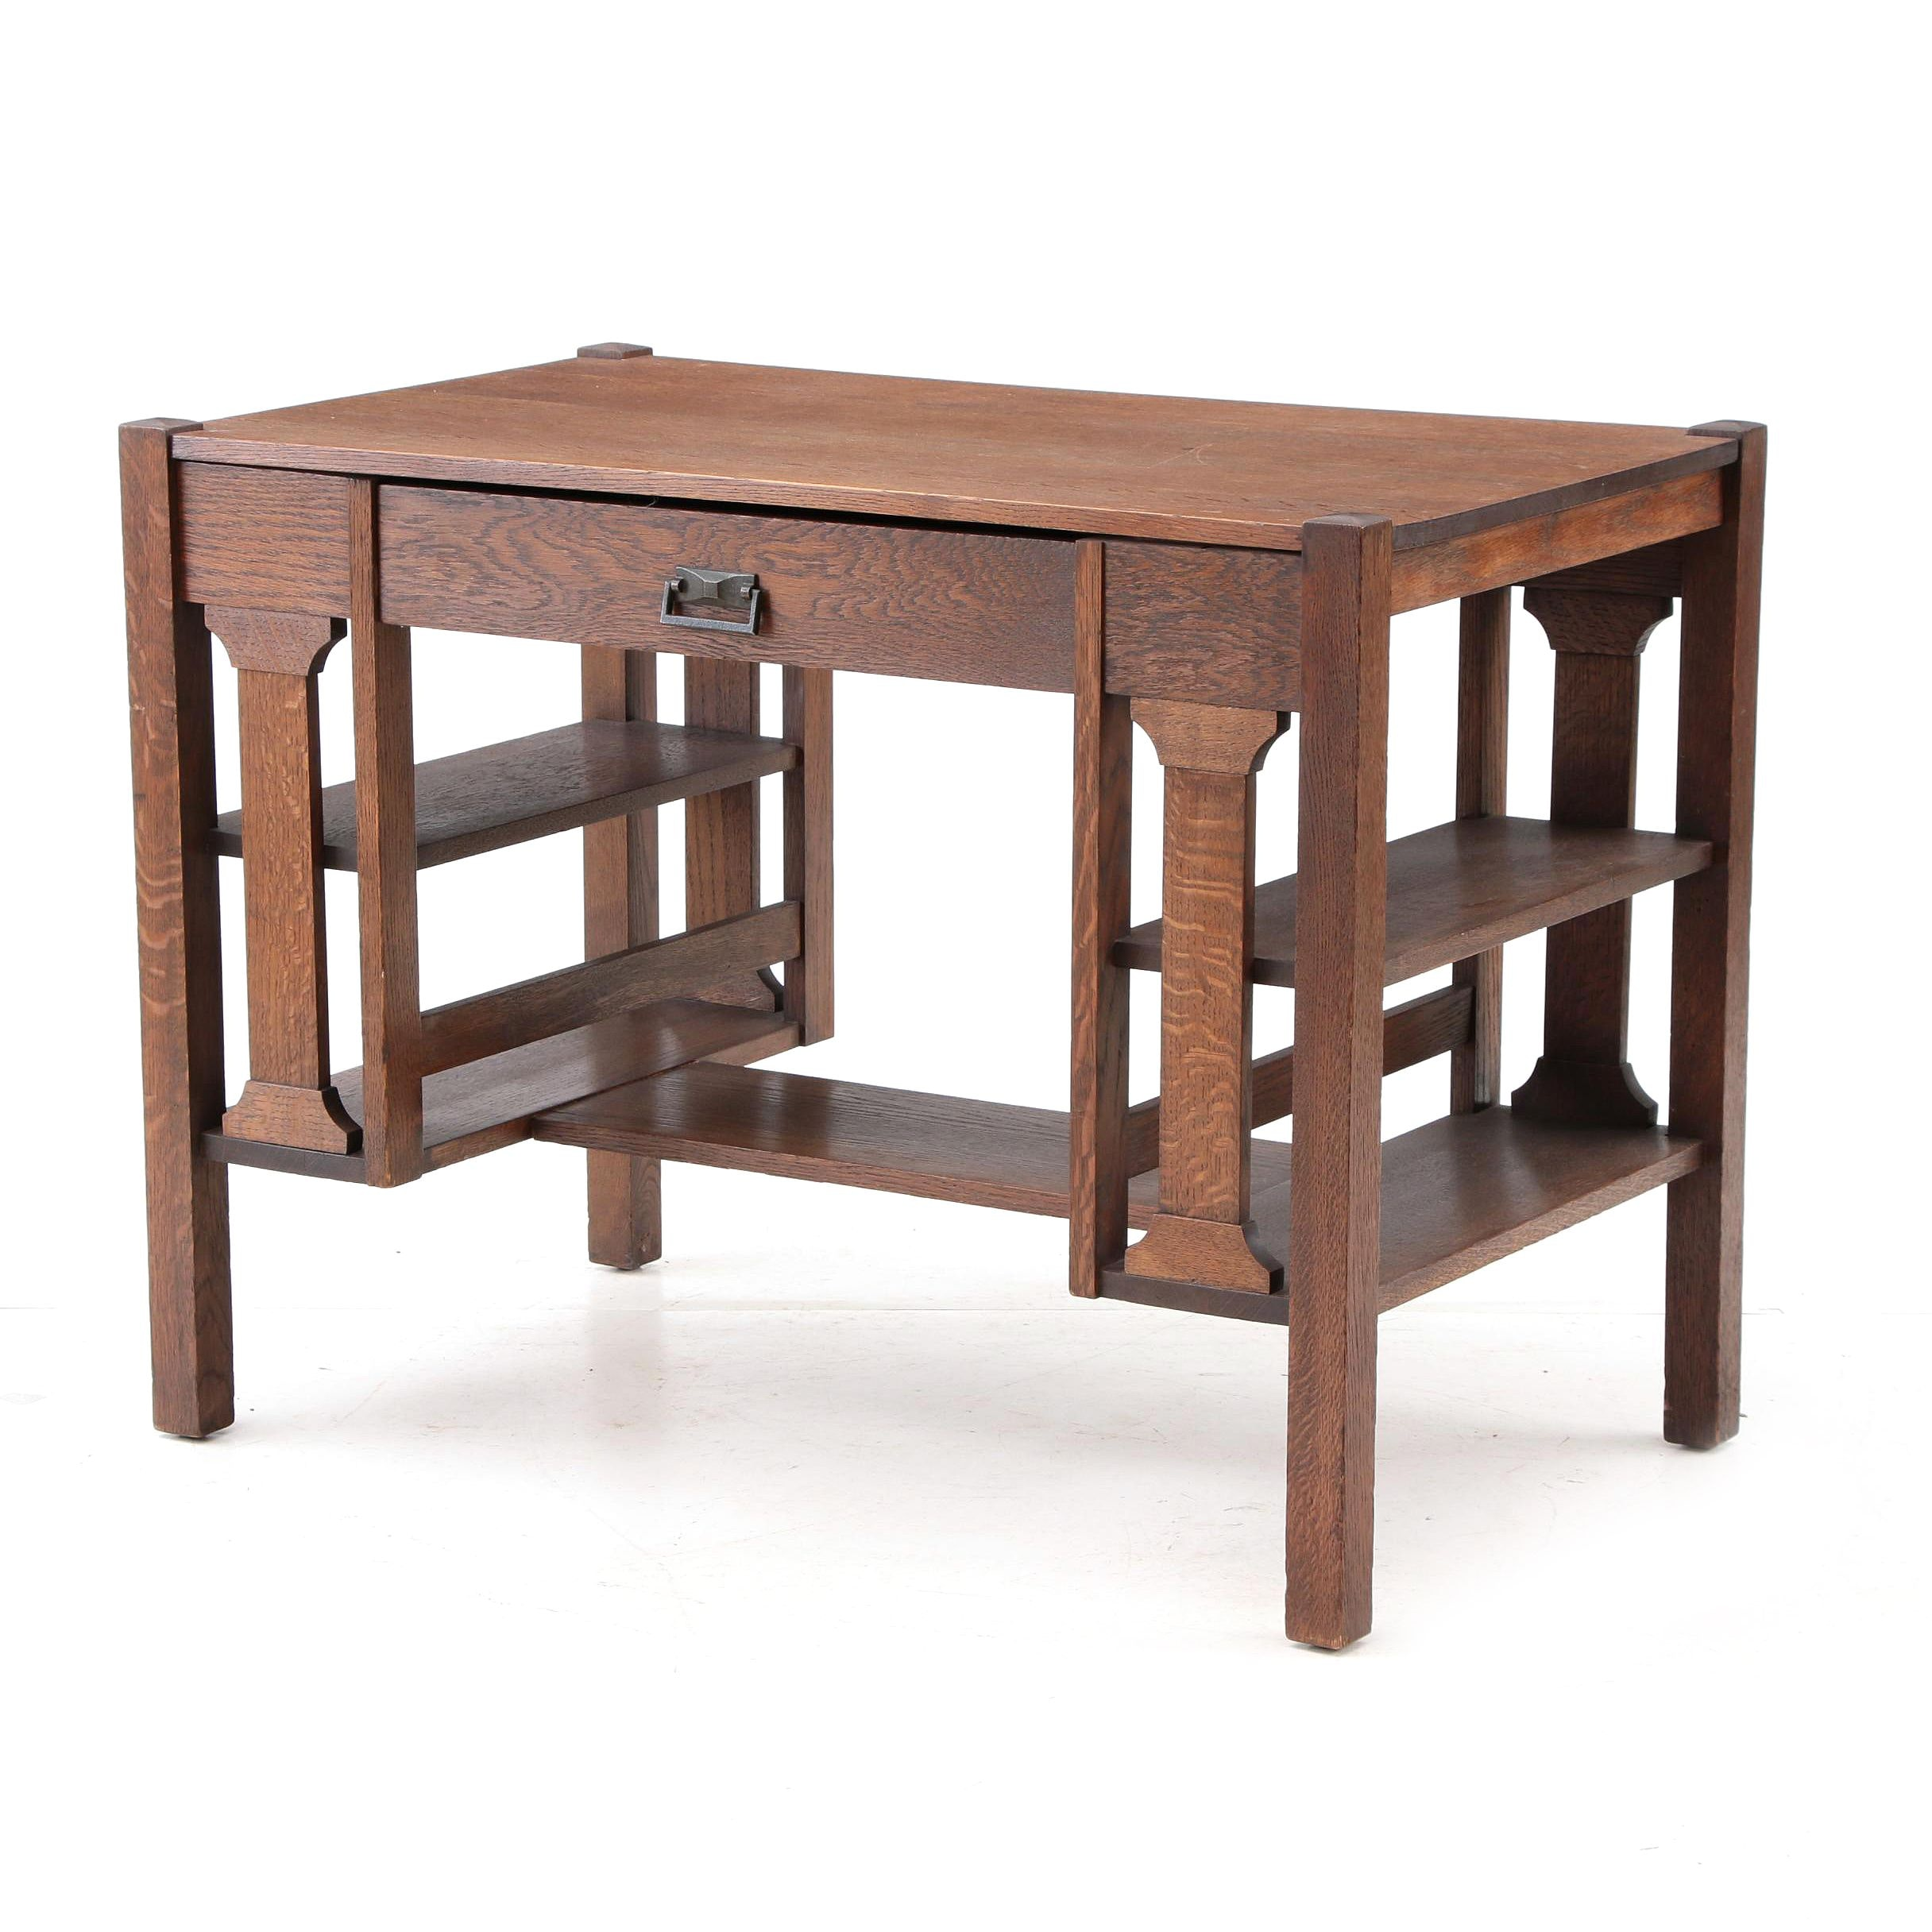 An Early 20th Century Mission Style Desk